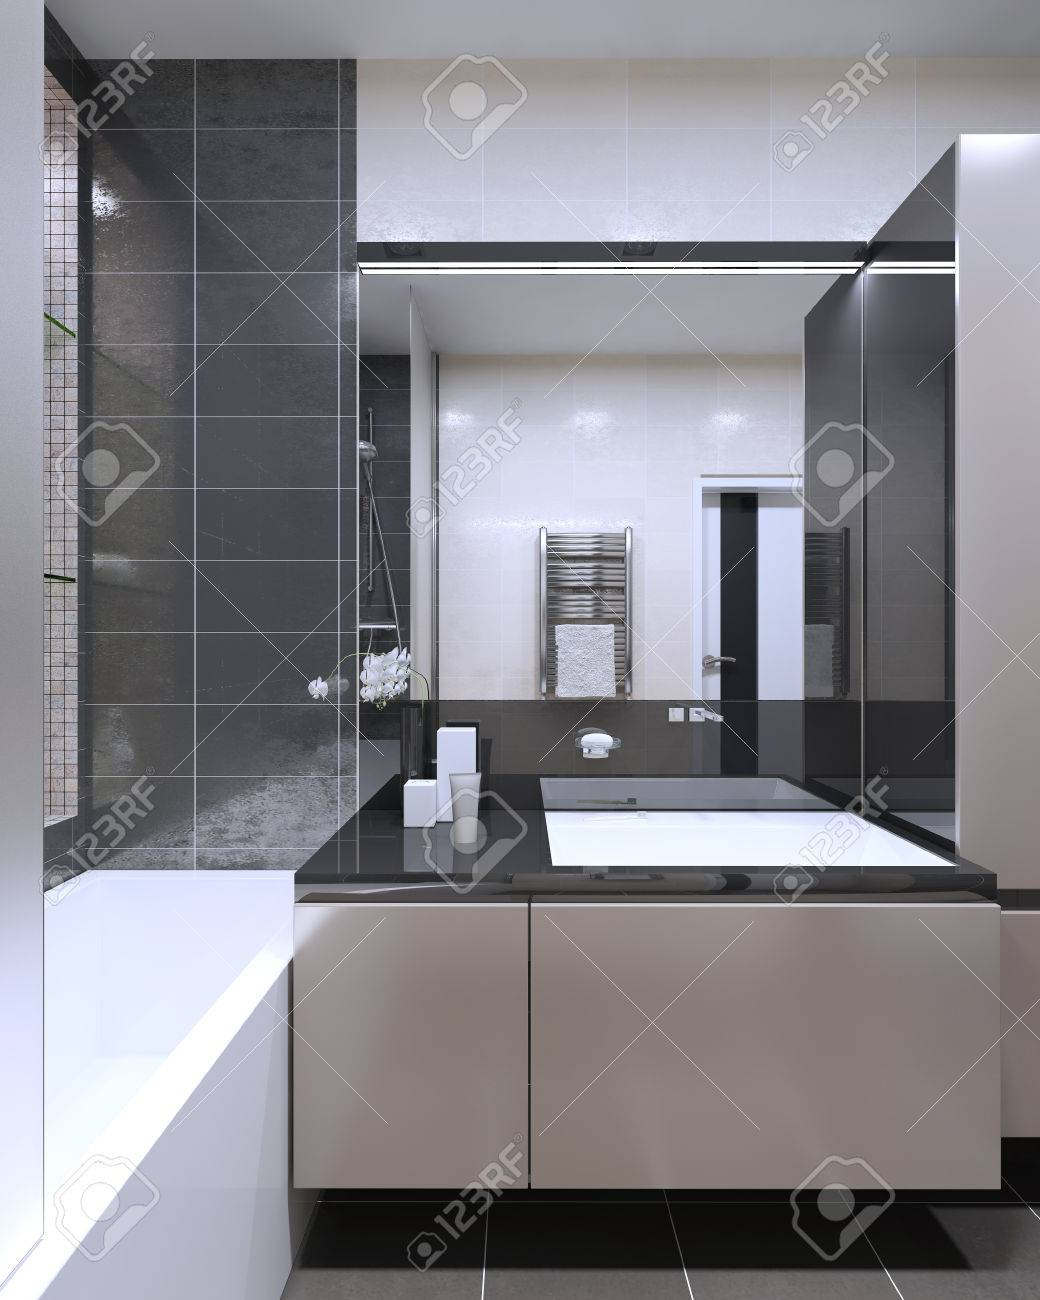 Bathroom Contemporary Style With Large Mirror With Neon Lamps, Peach Puff  Furniture With Anthracite Color